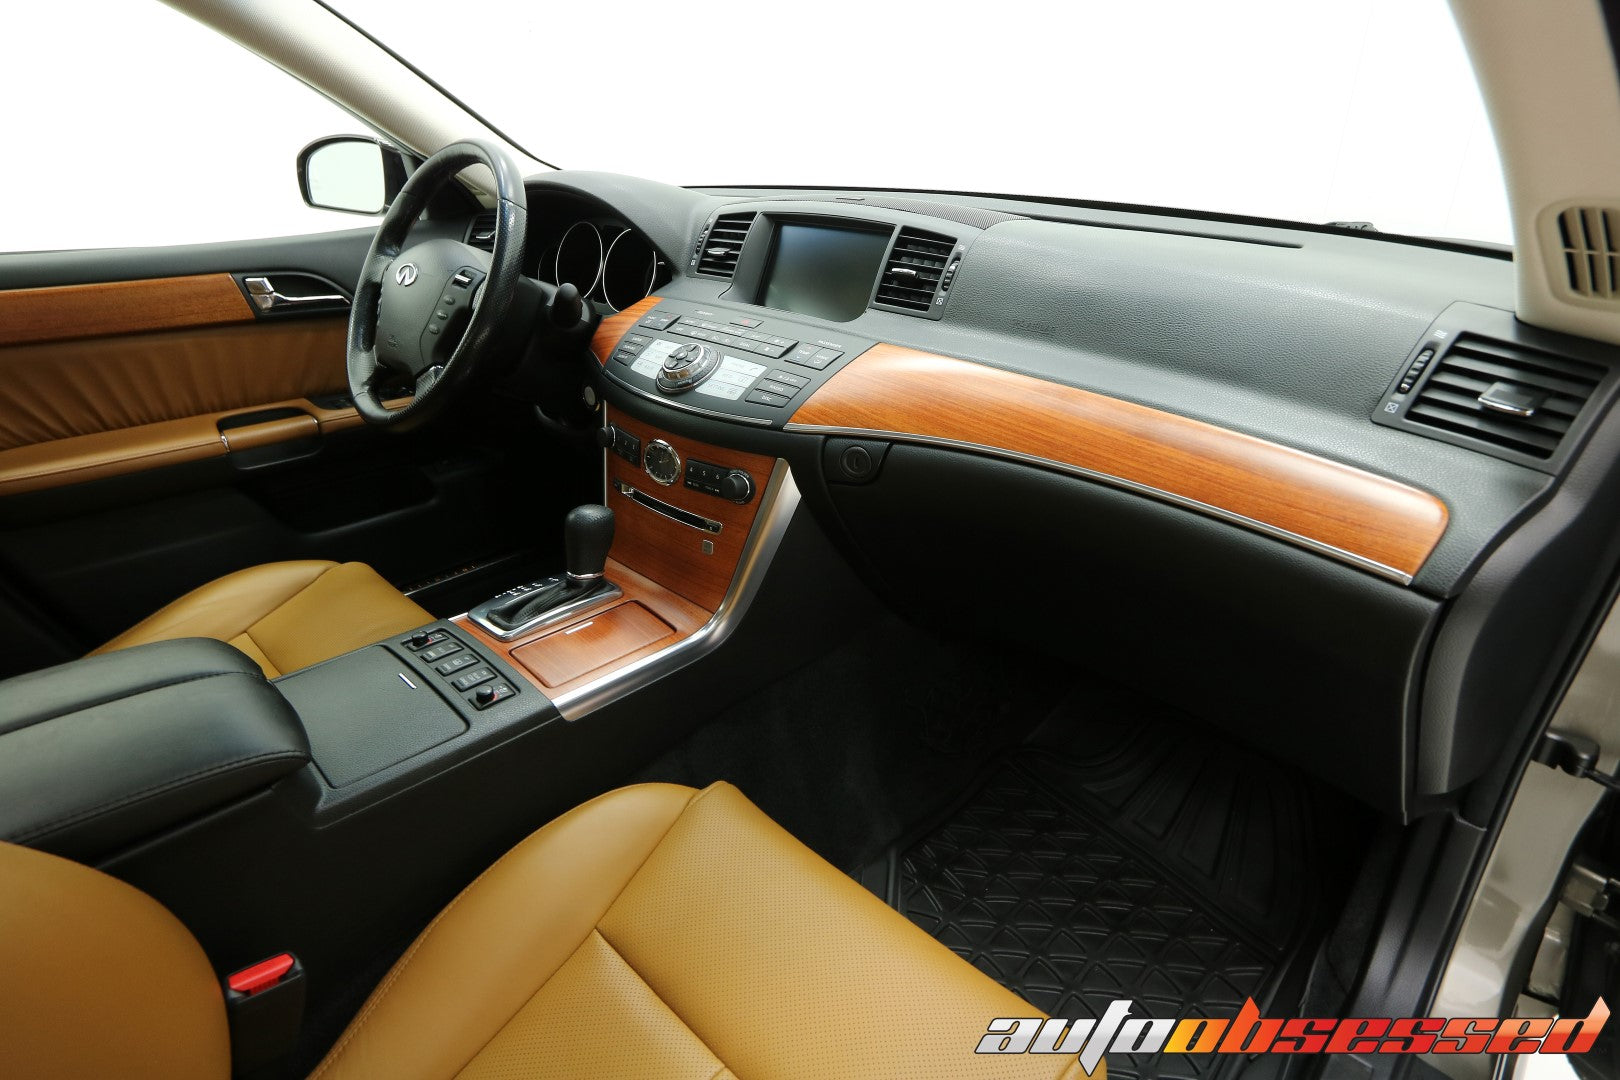 2006 Infinity M35x Clean Room Leather Conditioner Detailing Complete - Auto Obsessed